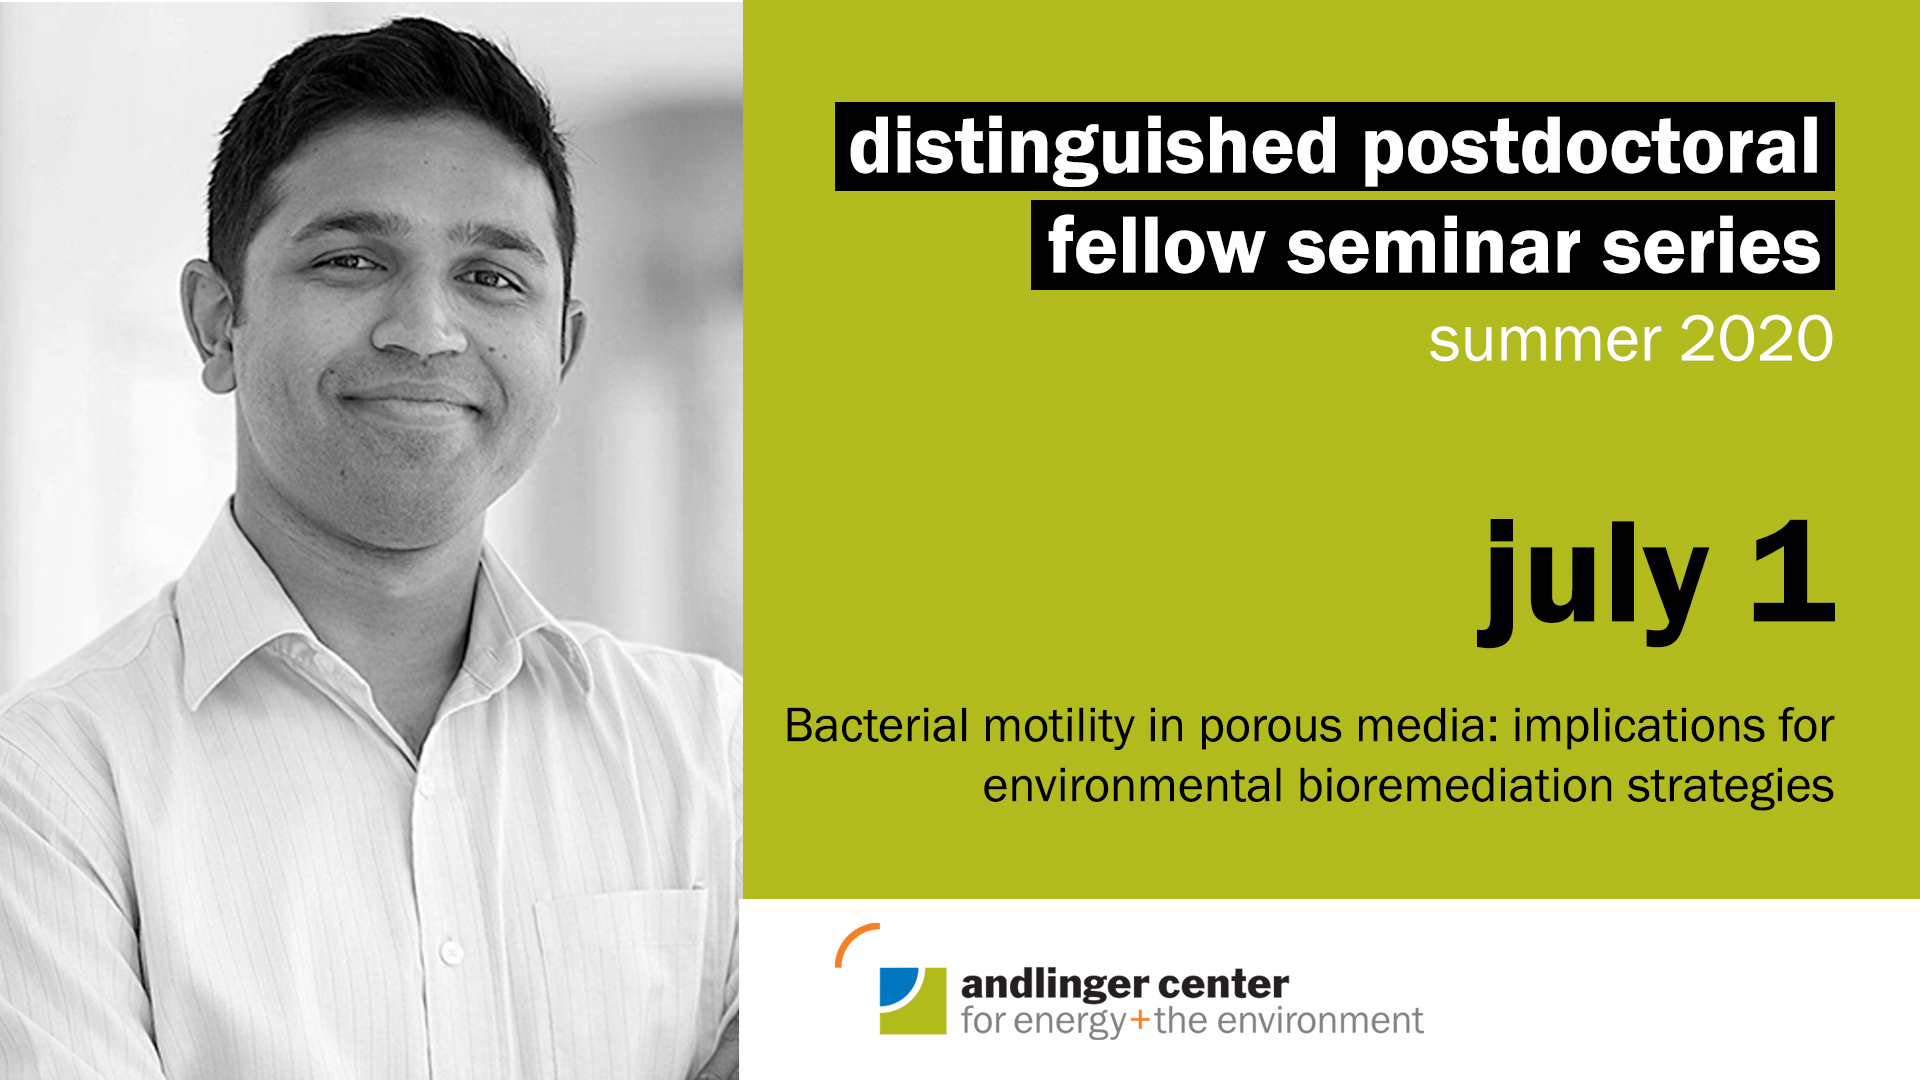 July 1 at 2pmBhattacharjee's current research focuses on understanding and controlling the behavior of bacterial communities for water remediation. Bhattacharjee also collaborates with researchers in the Departments of Physics, Civil and Environmental Engineering, Molecular Biology, and at the Andlinger Center for Energy and the Environment. He also collaborates with researchers in bioremediation at the University of Virginia. Bhattacharjee published his most recent work from Princeton University in Nature Communications and Soft Matter. He is mentored by Prof. Sujit Datta in Chemical and Biological Engineering.Twitter | Website